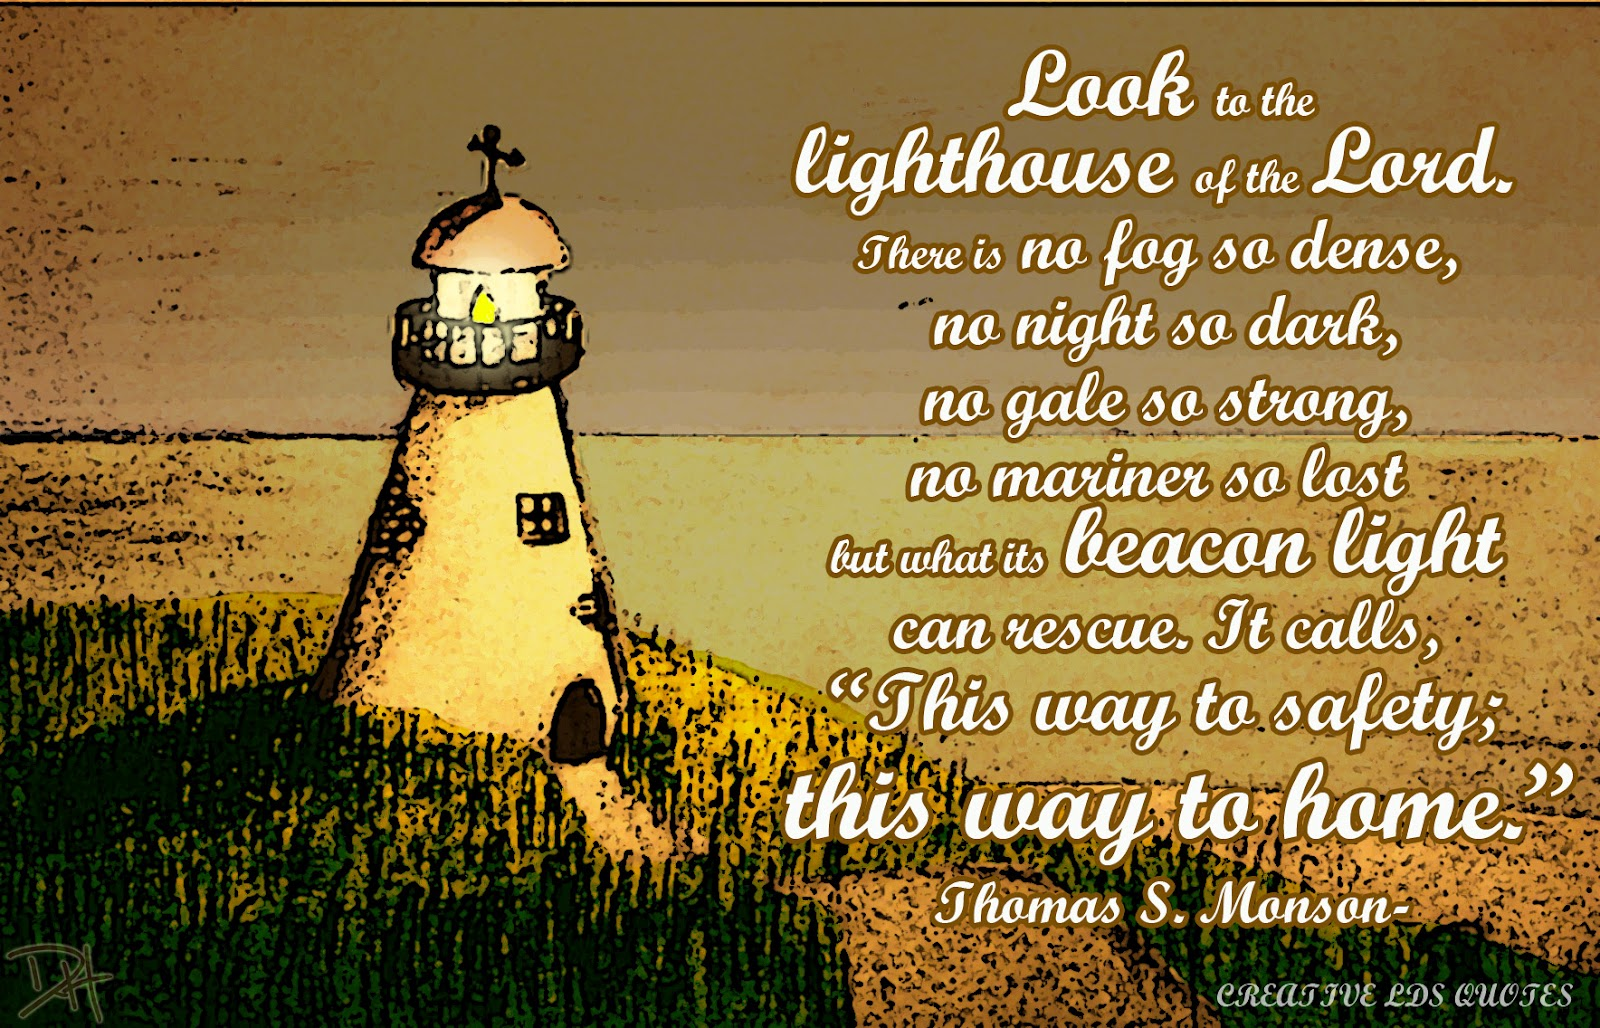 Lighthouse Quotes. QuotesGram